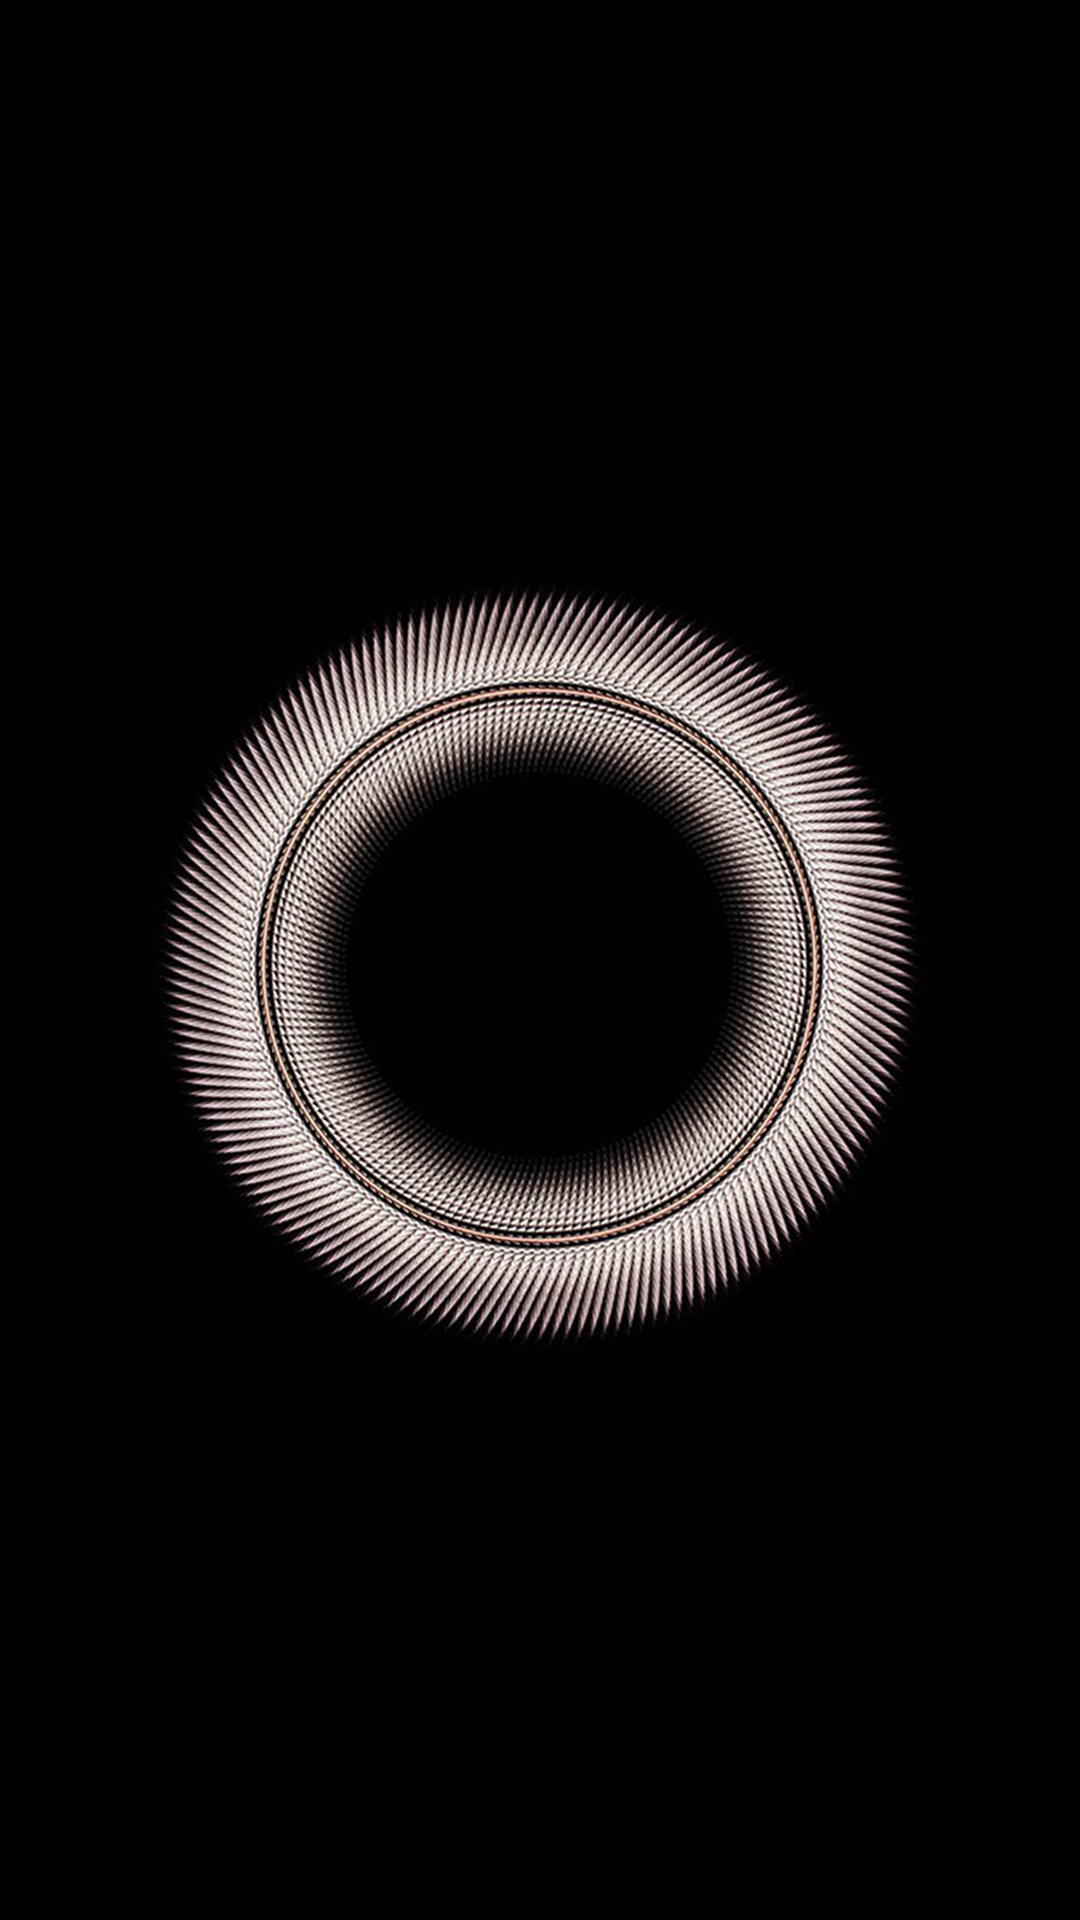 Circle-Dark-Inside-Minimal-Simple-Pattern-Background-iPhone-wallpaper-wp3004362